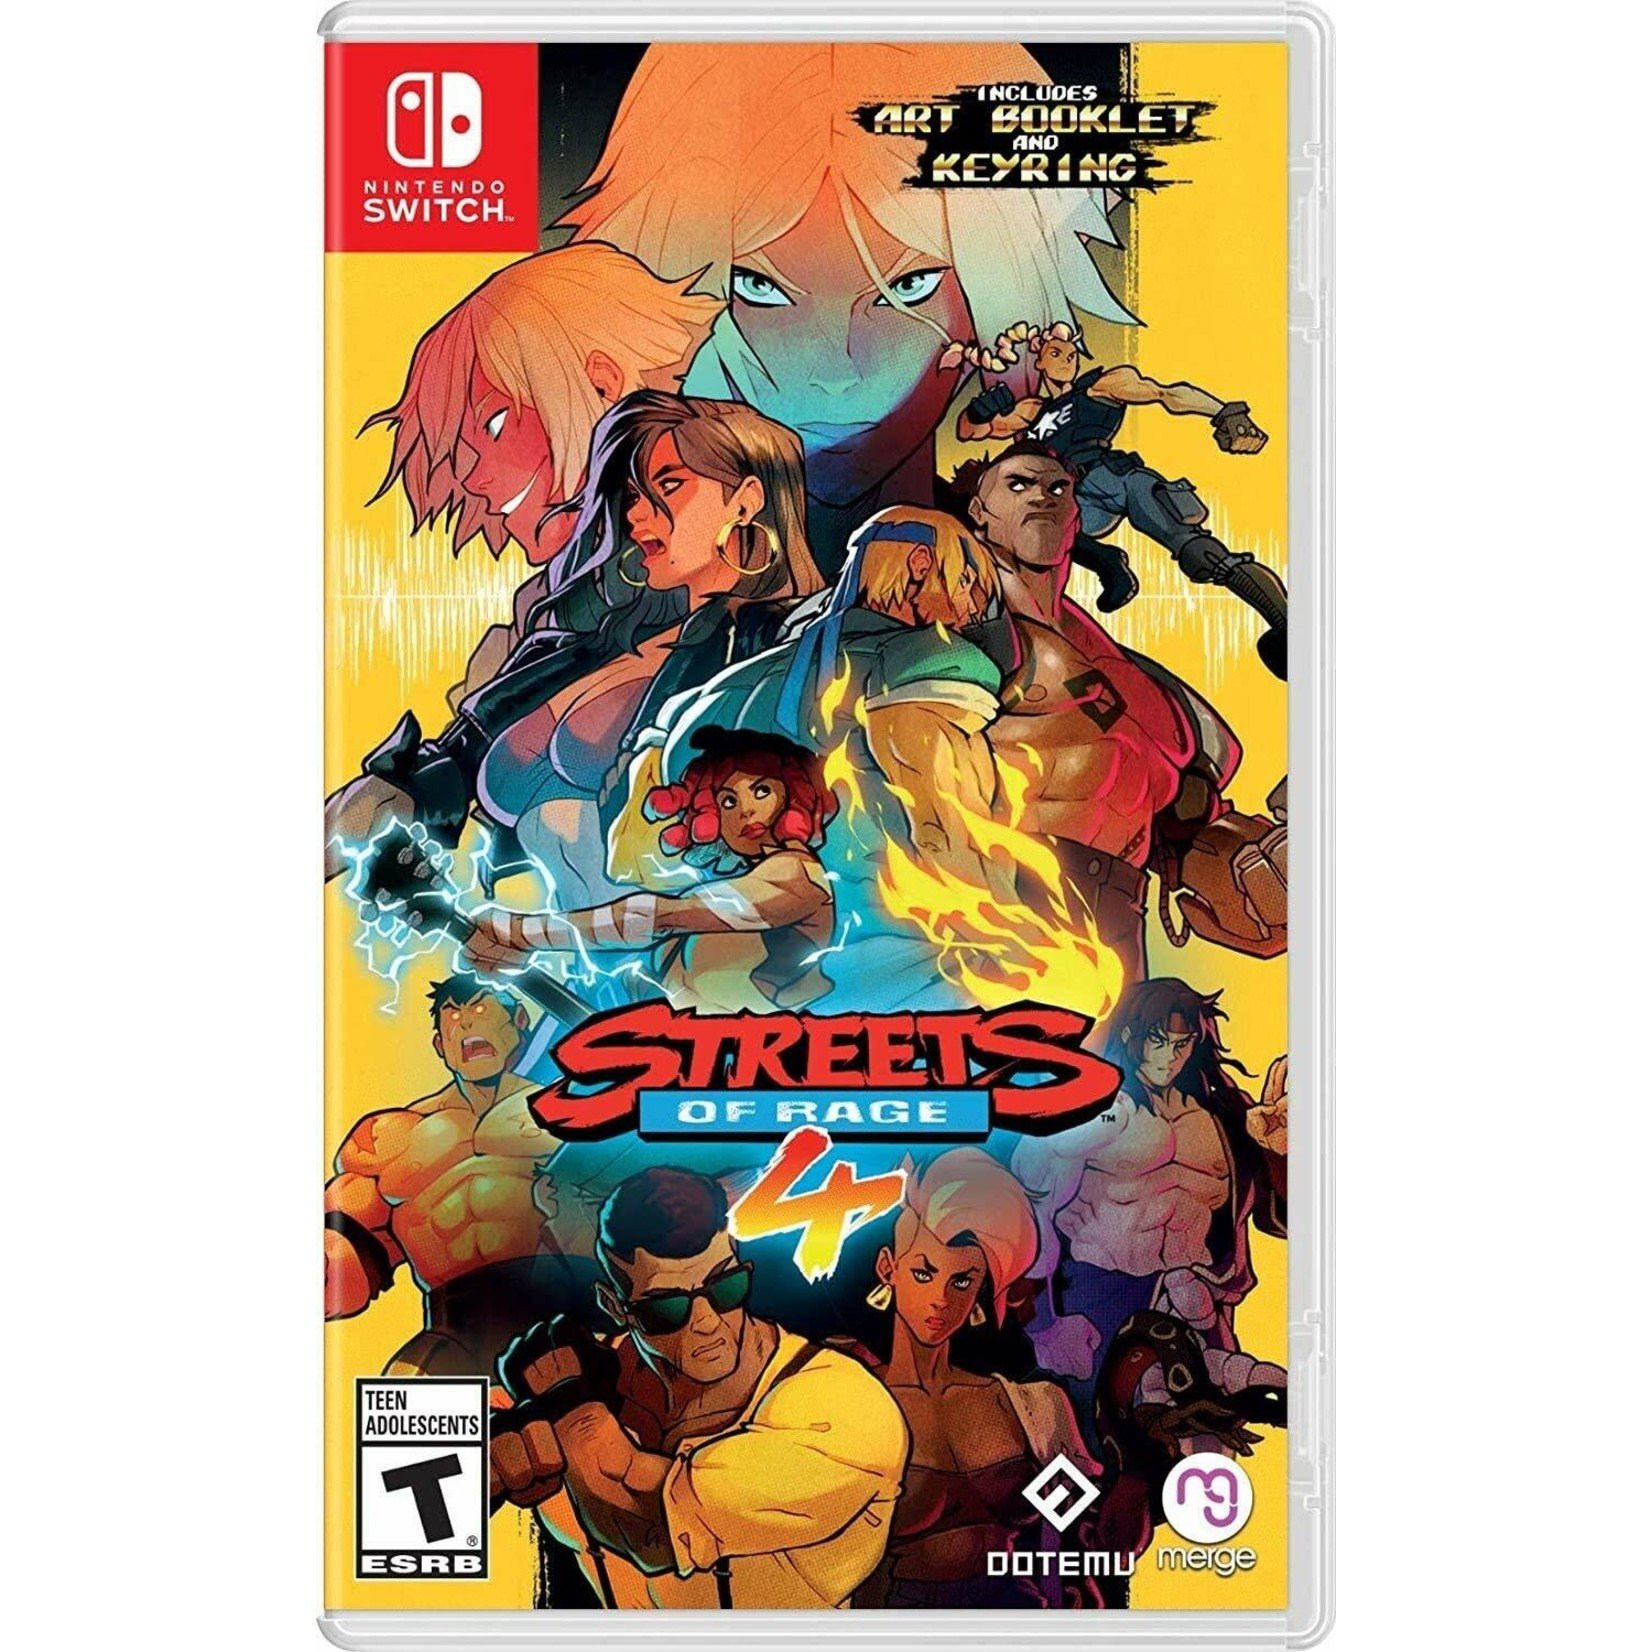 SWITCH-STREETS OF RAGE 4